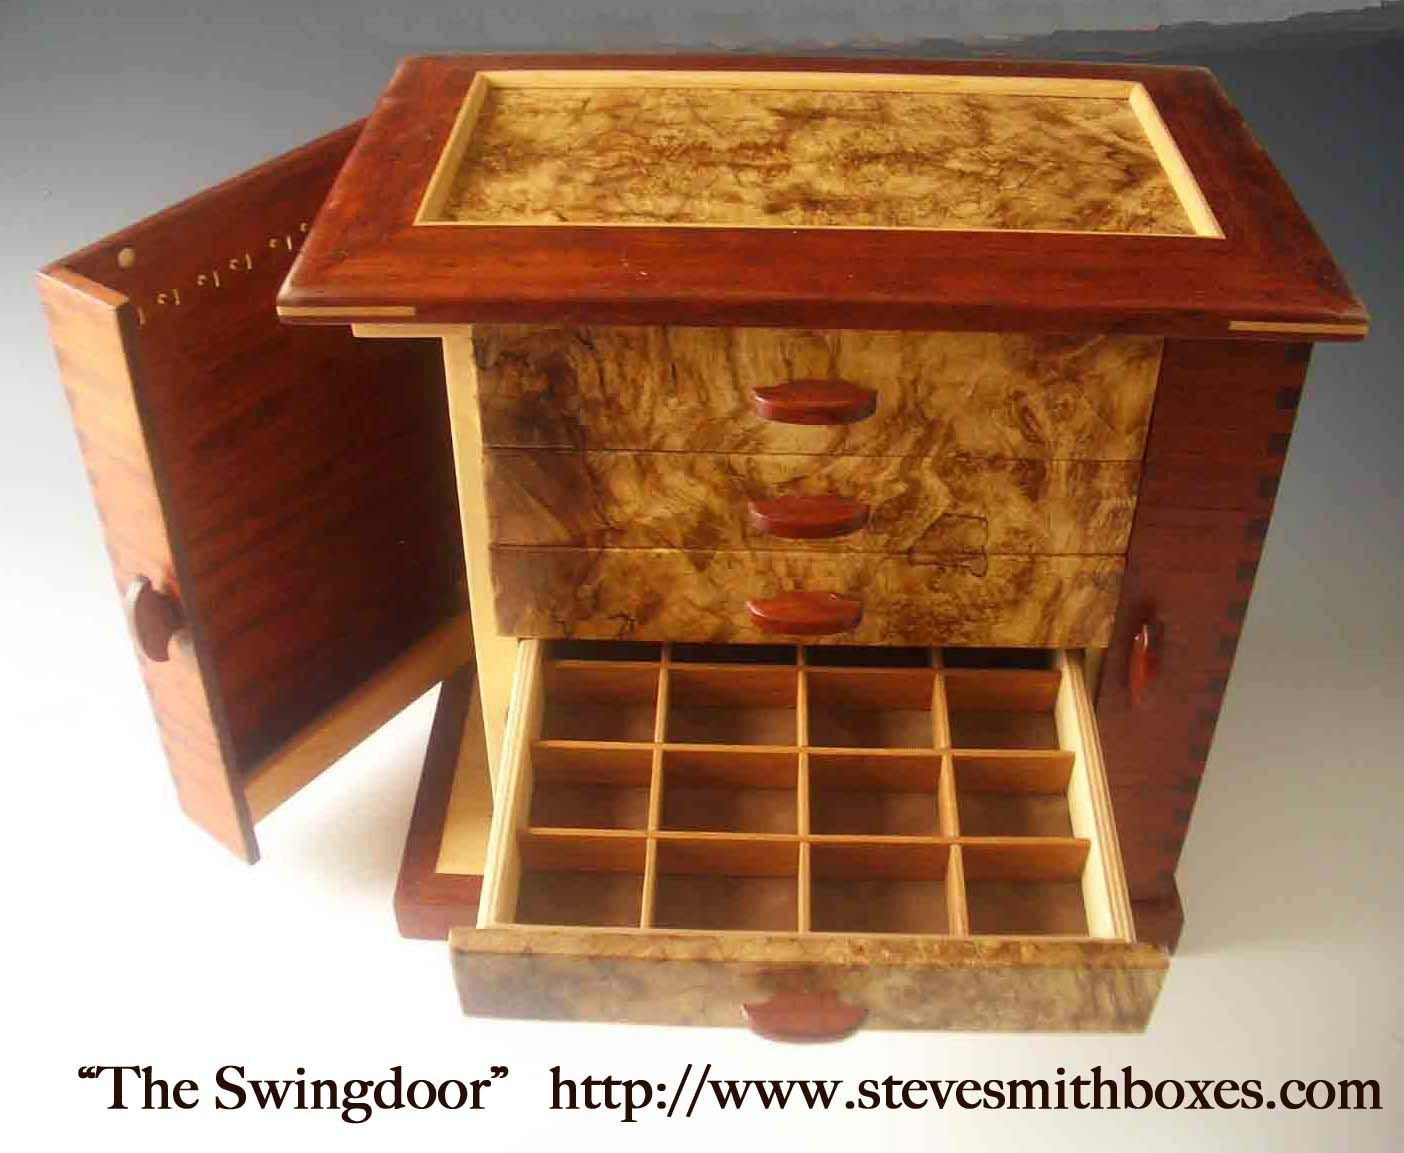 Handmade wooden jewelry boxes keepsake boxes and mens valet boxes